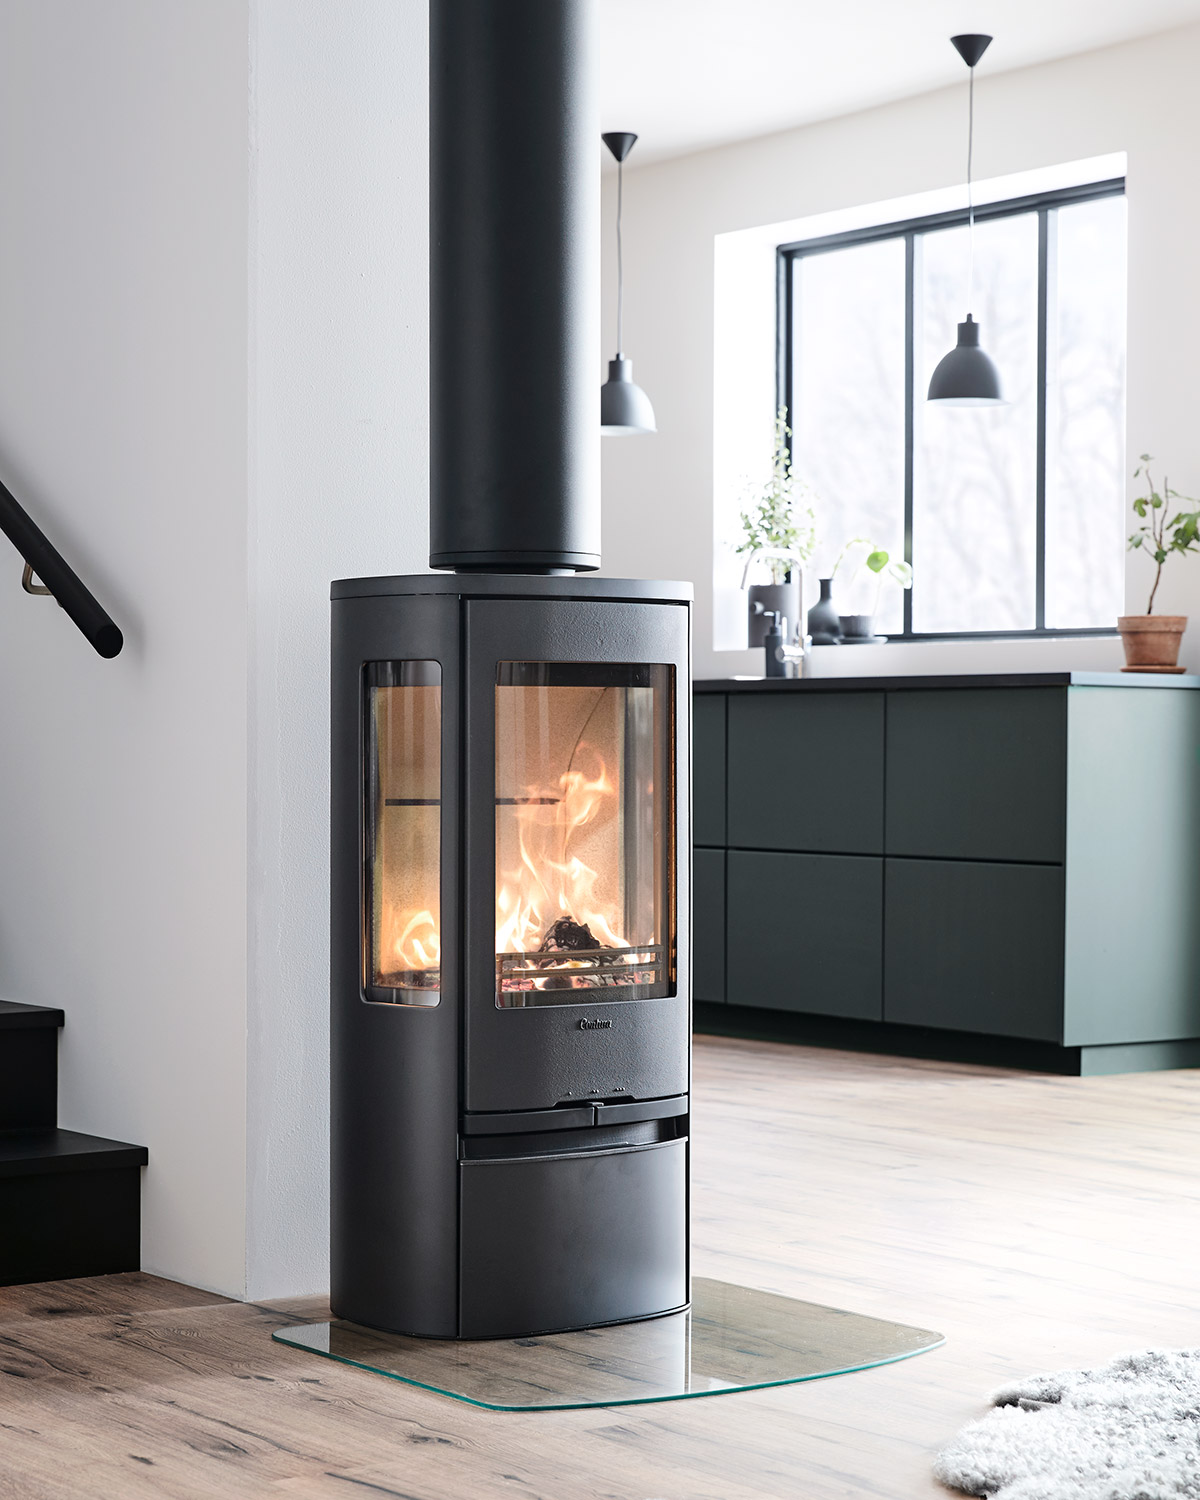 Contura 856 wood stove made in Sweden on sales at showroom Near Bury St Edmunds